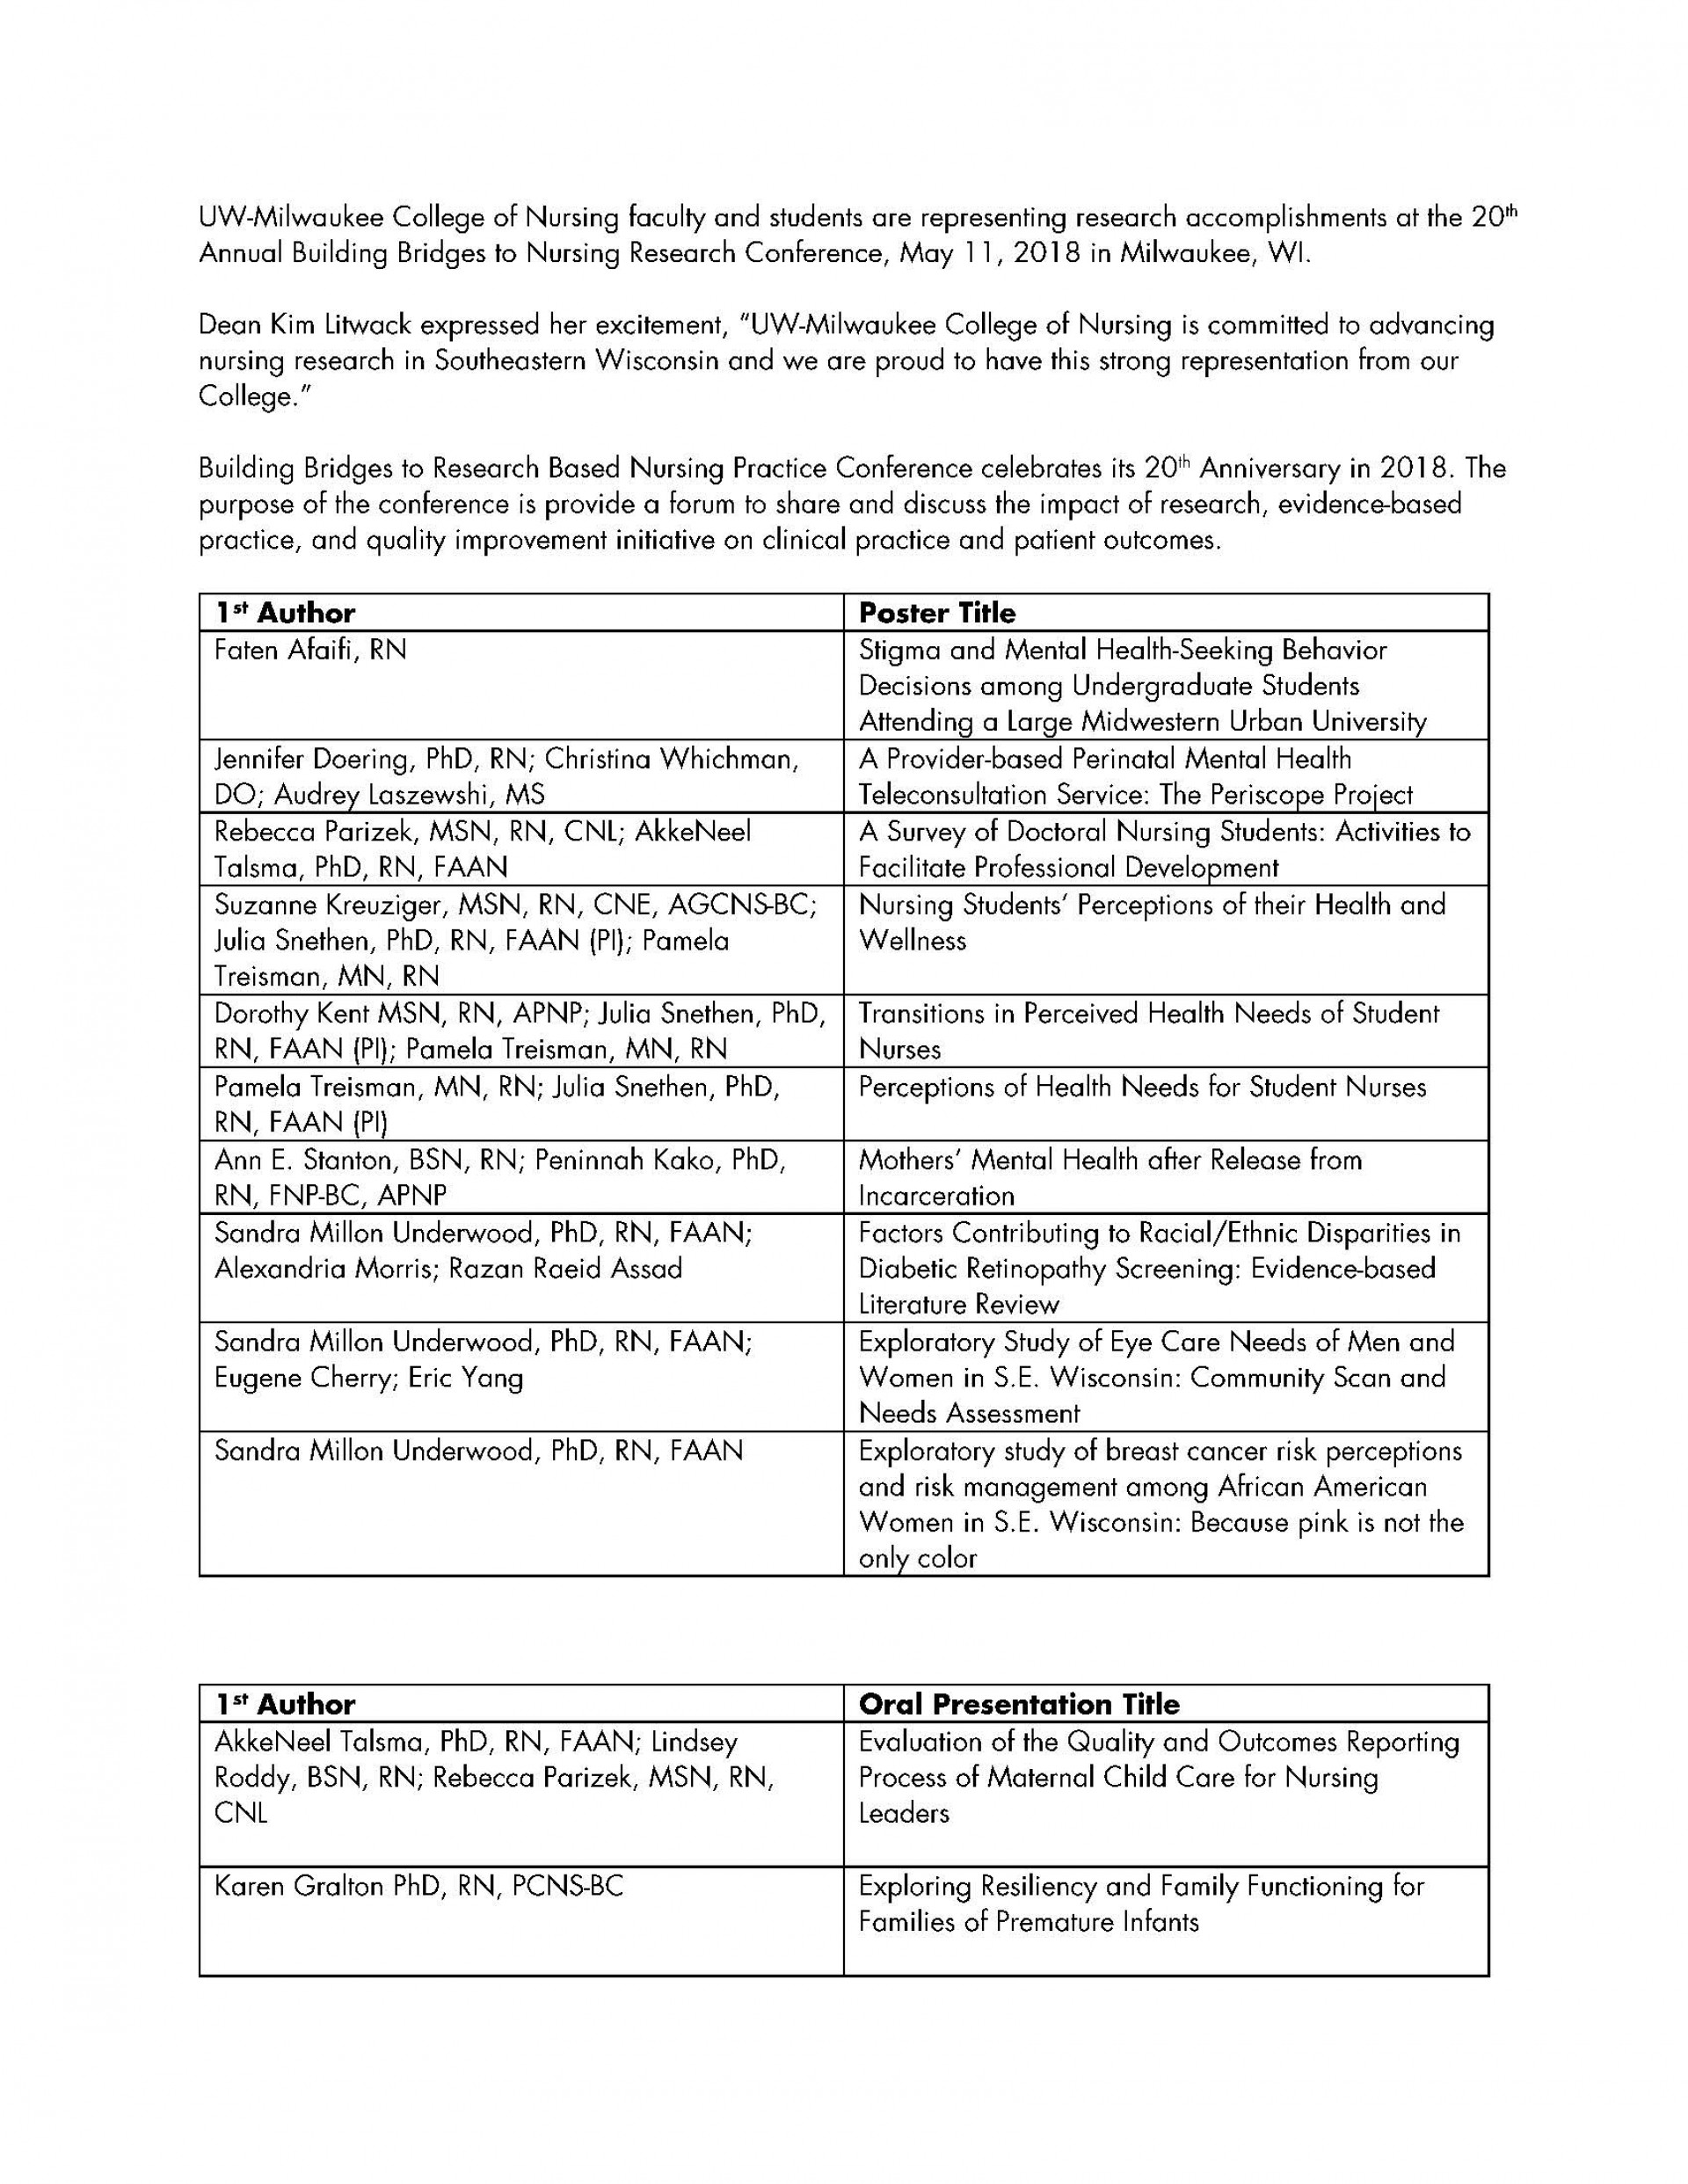 019 Nursing Research Paper Uwmweb Storycon 2018 Poster And Oral Authors Striking Sample Pdf Questions Writing 1920